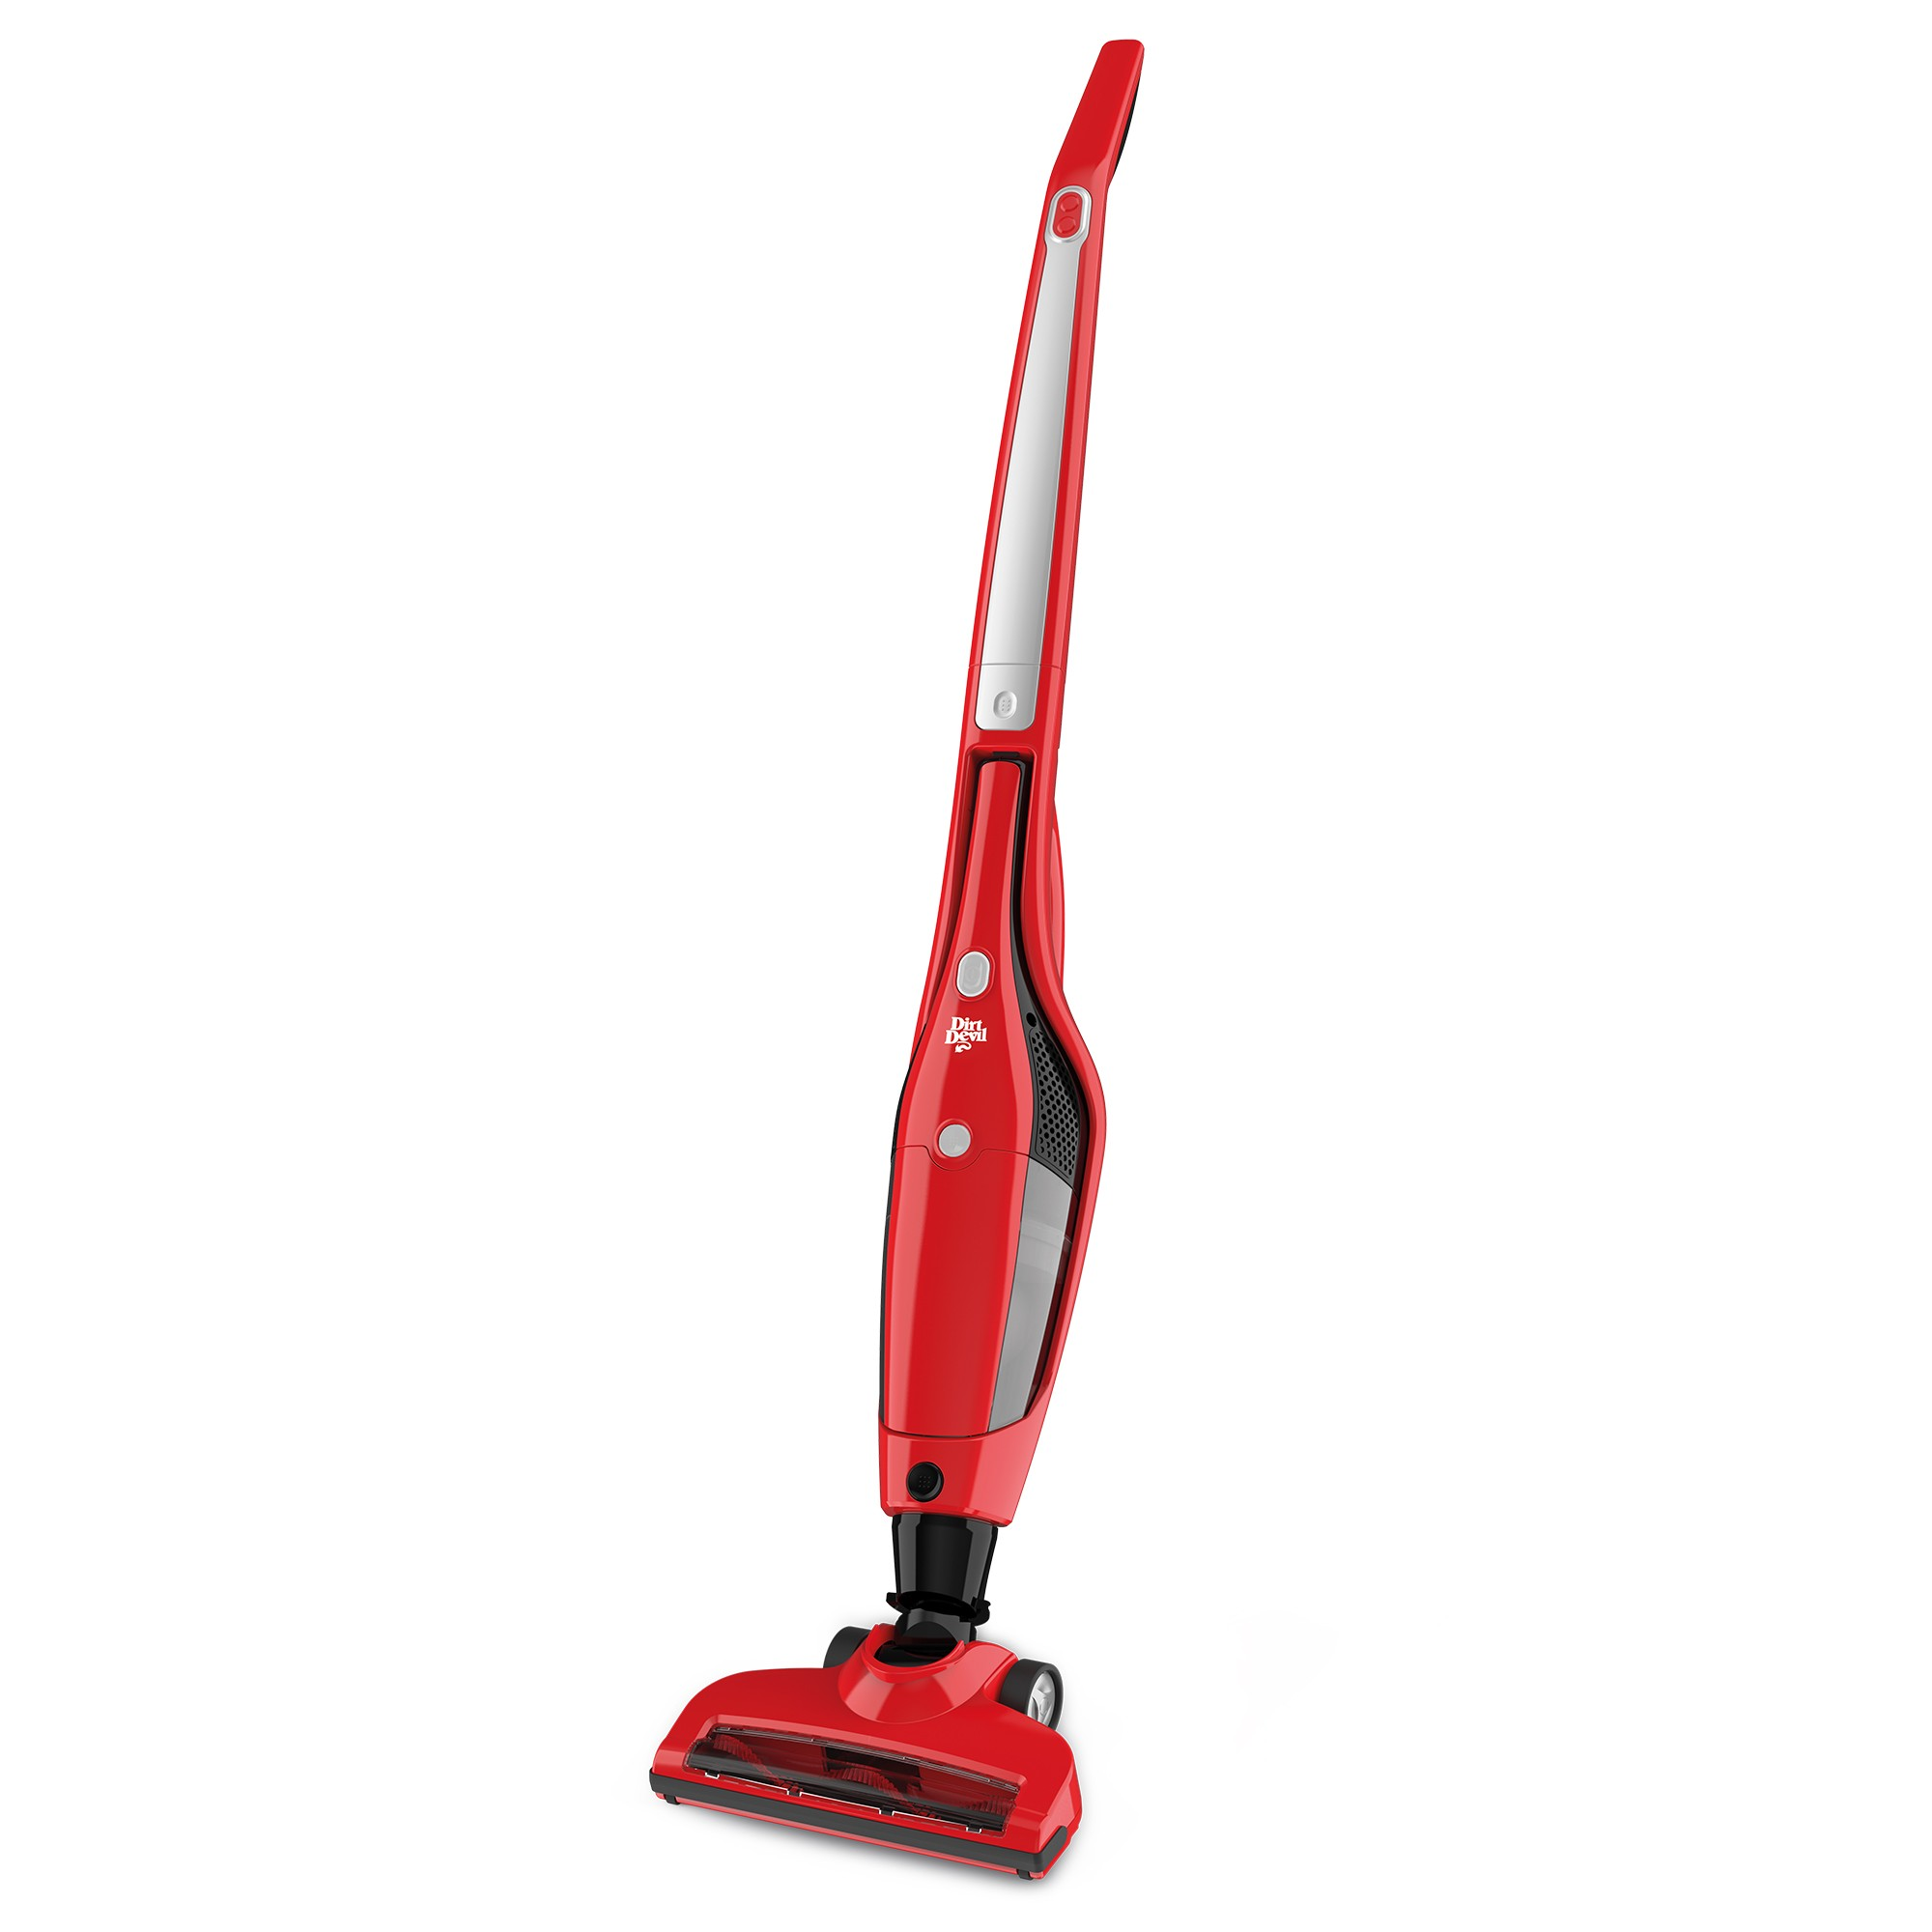 handiclean 18v cordless vacuum cleaner dirt devil uk. Black Bedroom Furniture Sets. Home Design Ideas